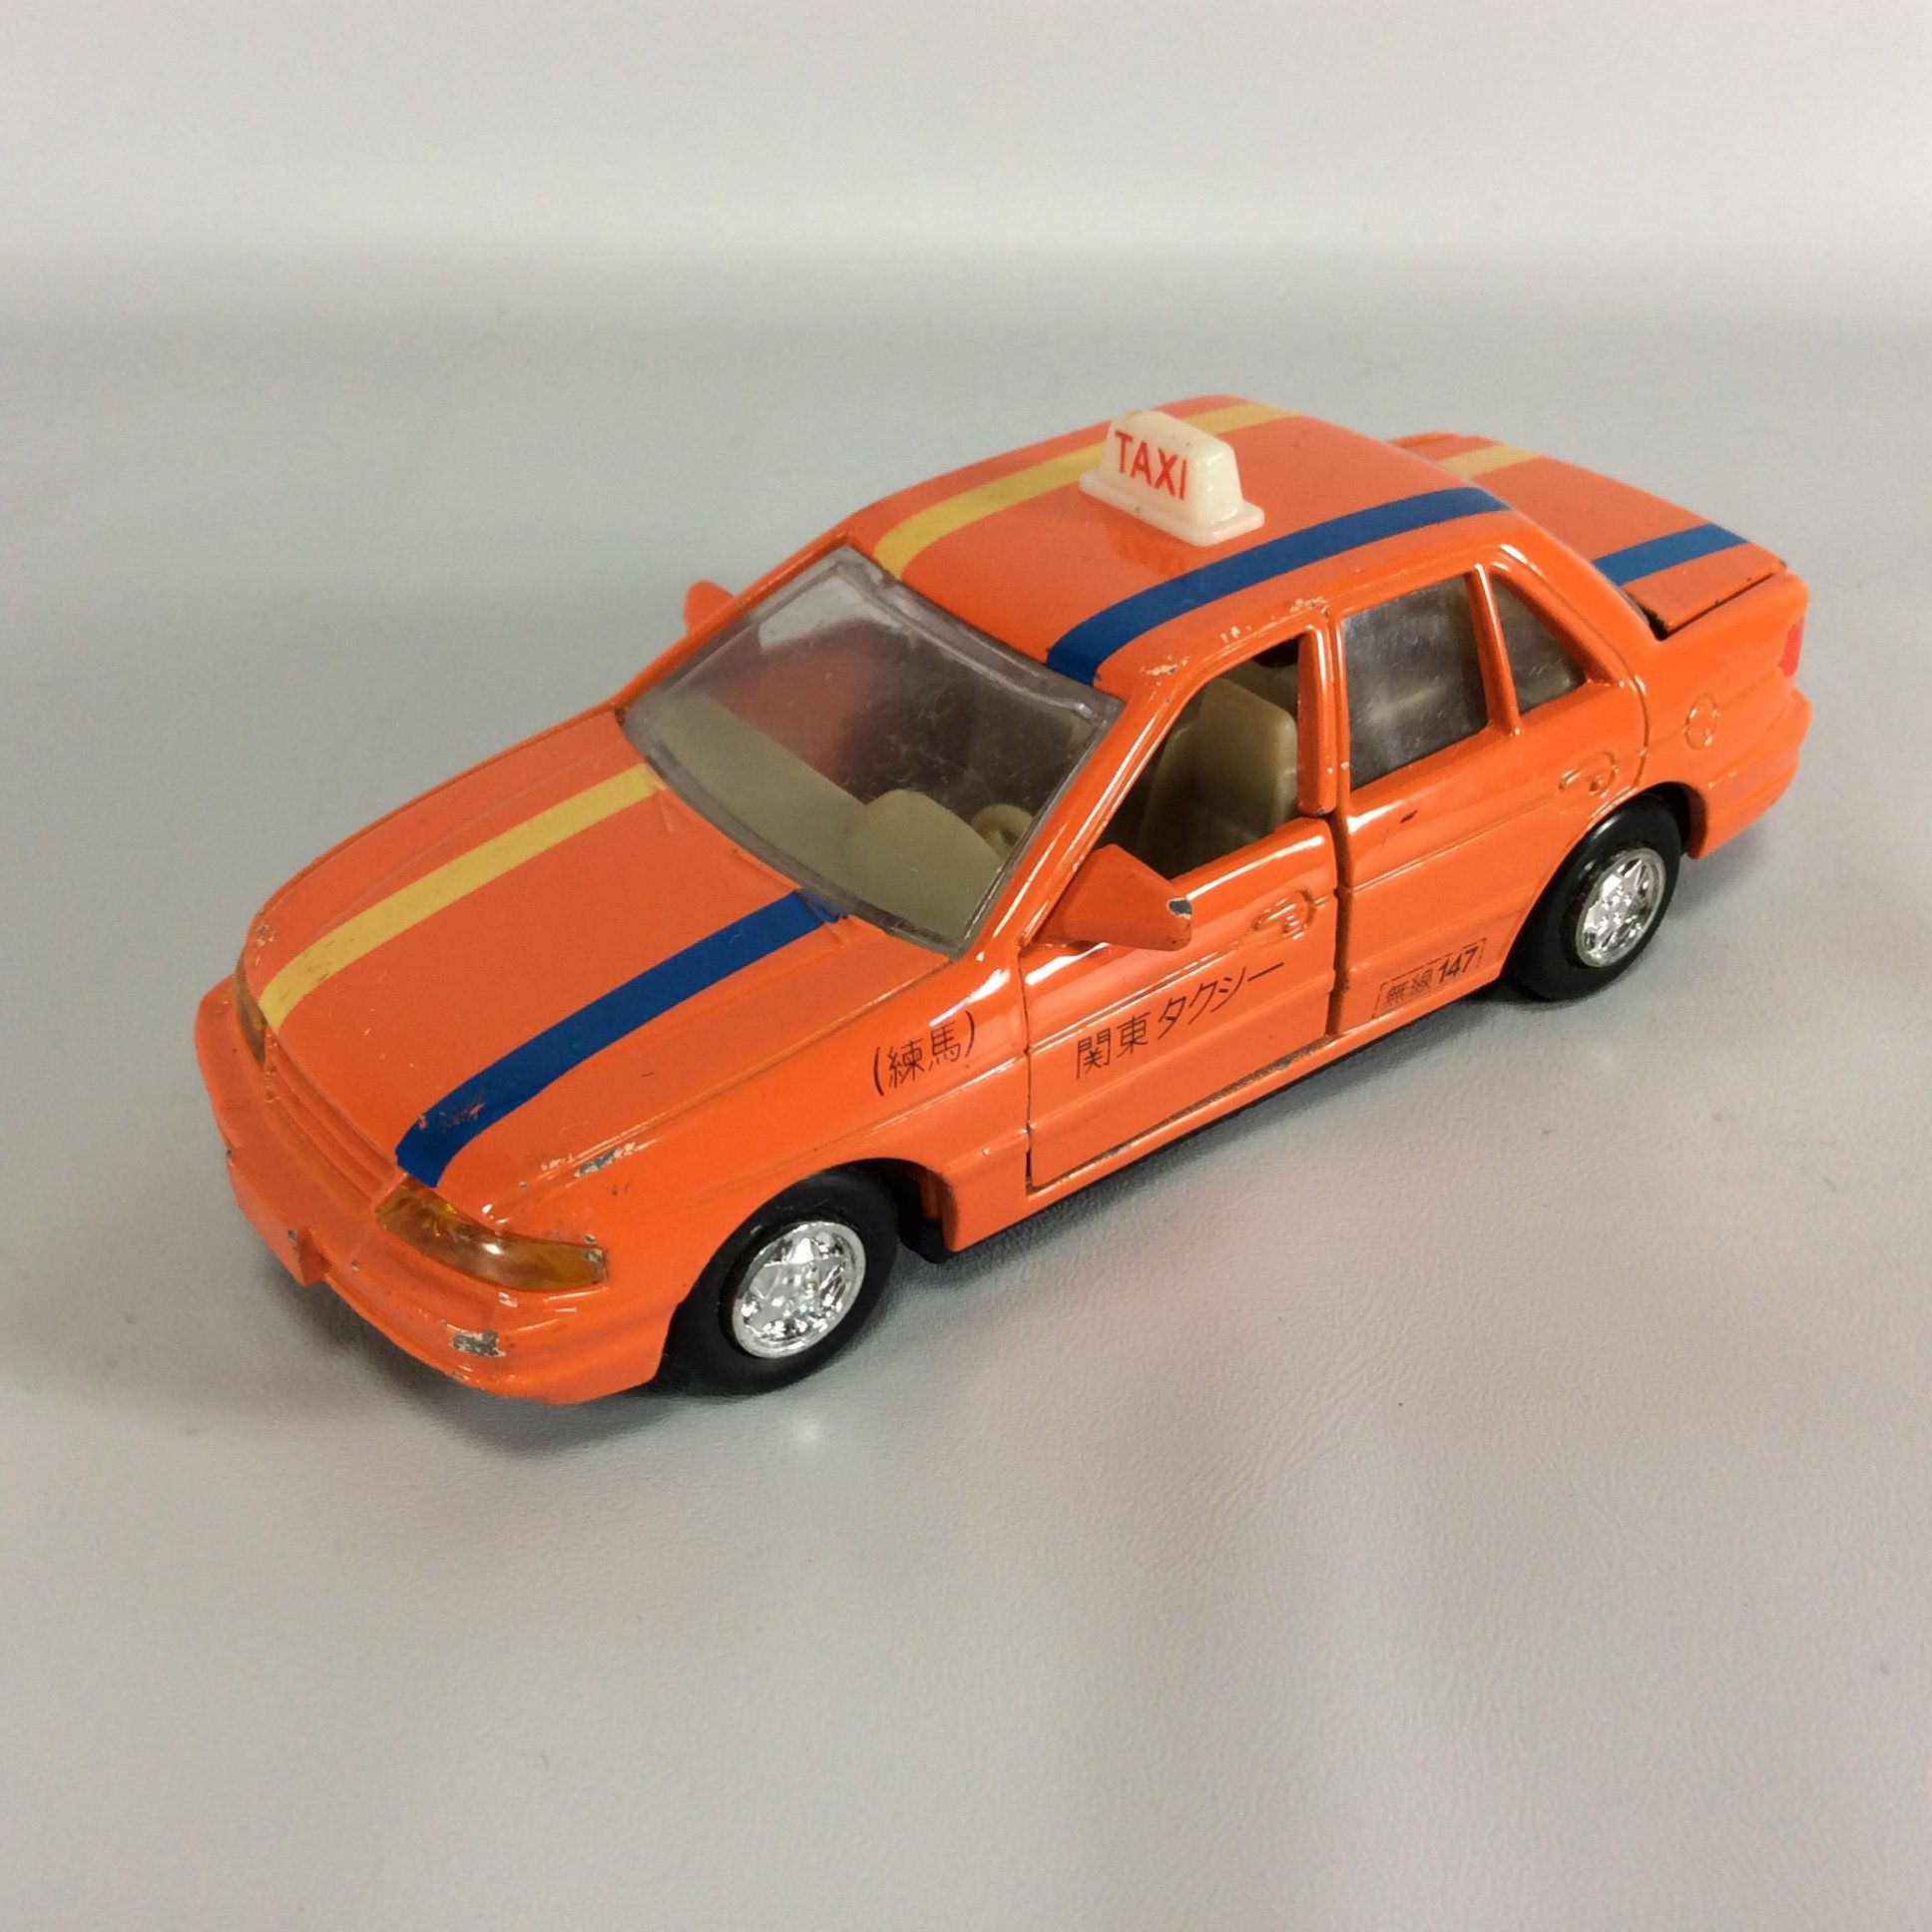 Taxi Diecast Car Japan Characters Made In China 147 Orange Etsy Diecast Cars Diecast Orange Door